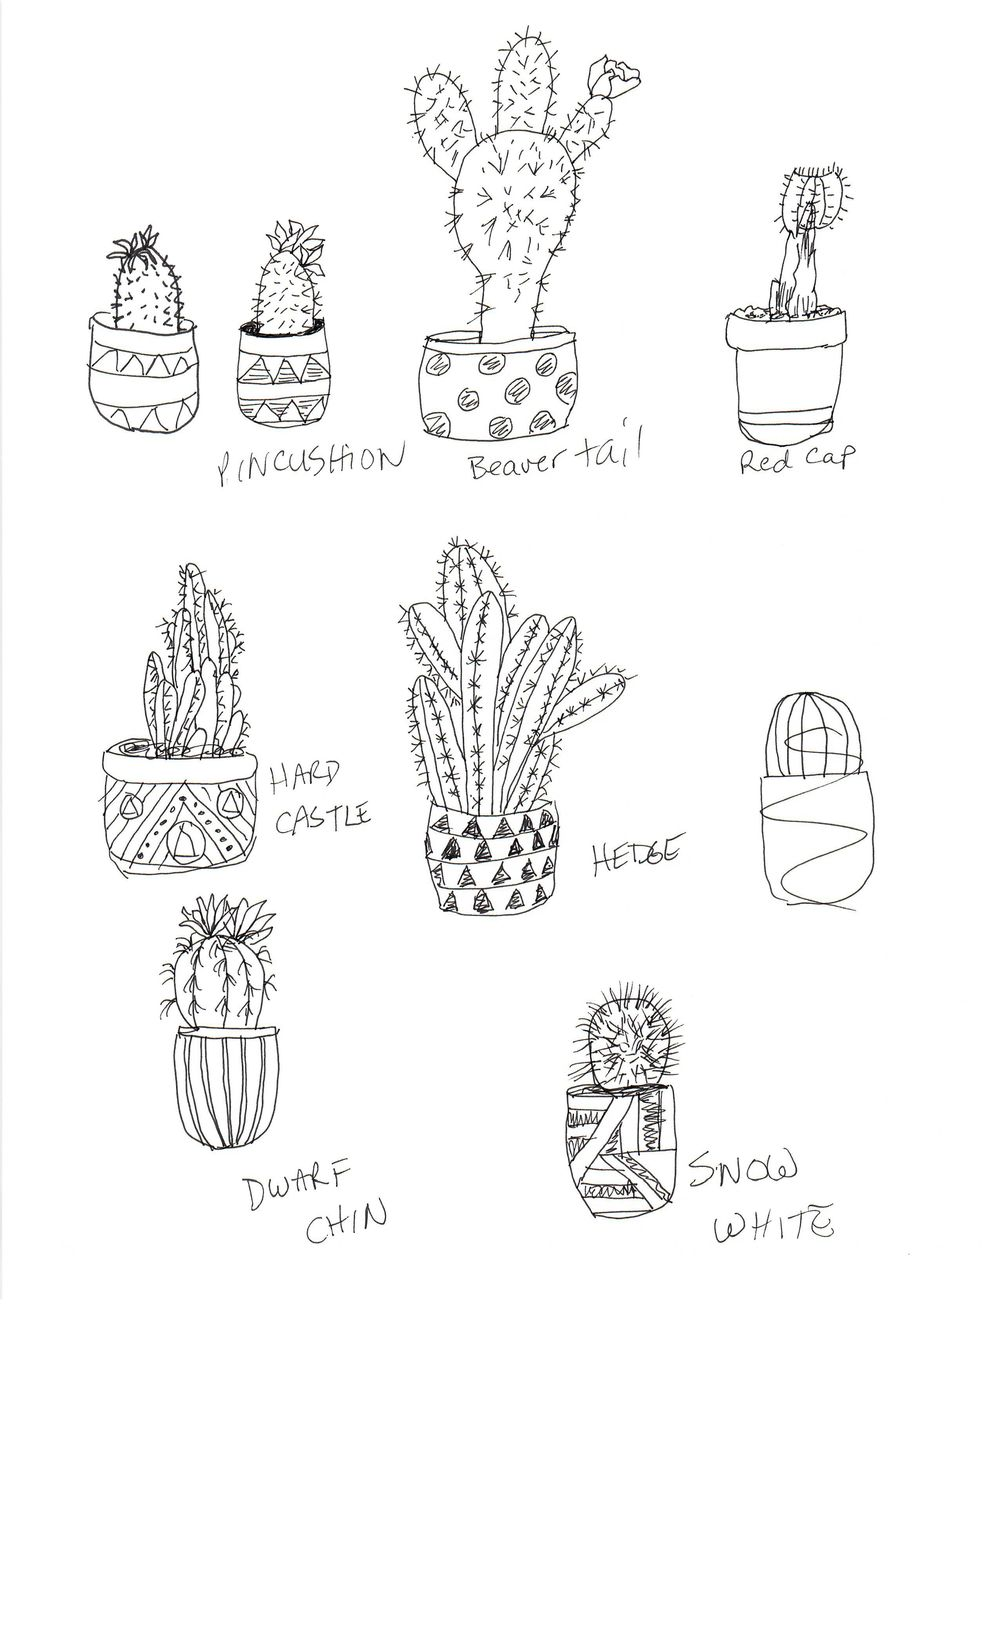 Practice Practice Practice Cactus cactus cactus. - image 4 - student project